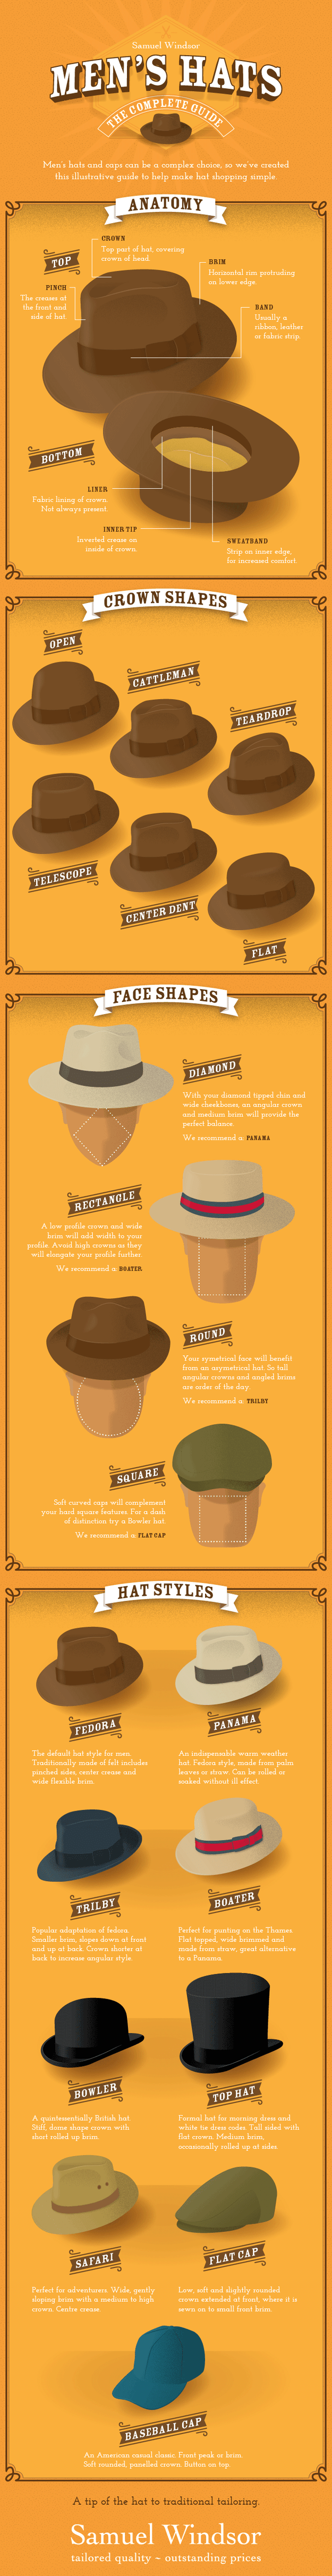 Know which hat works best for your noggin.